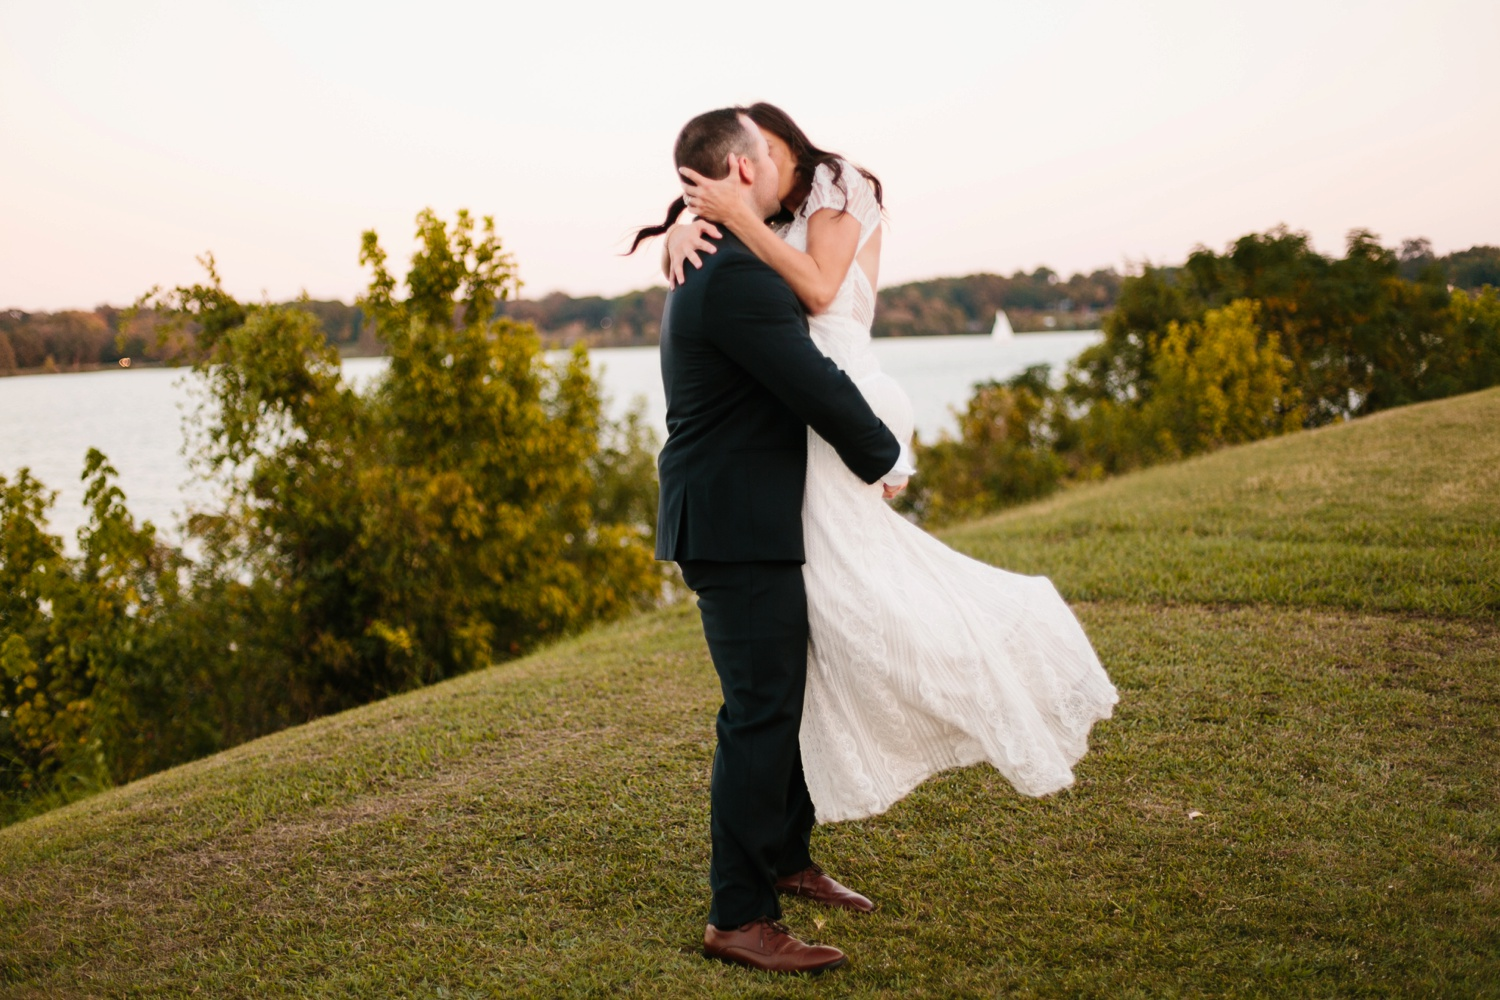 Kadee + Tyler | a raw, emotional wedding at the Filter Building on White Rock Lake in Dallas, TX by North Texas Wedding Photographer, Rachel Meagan Photography 185